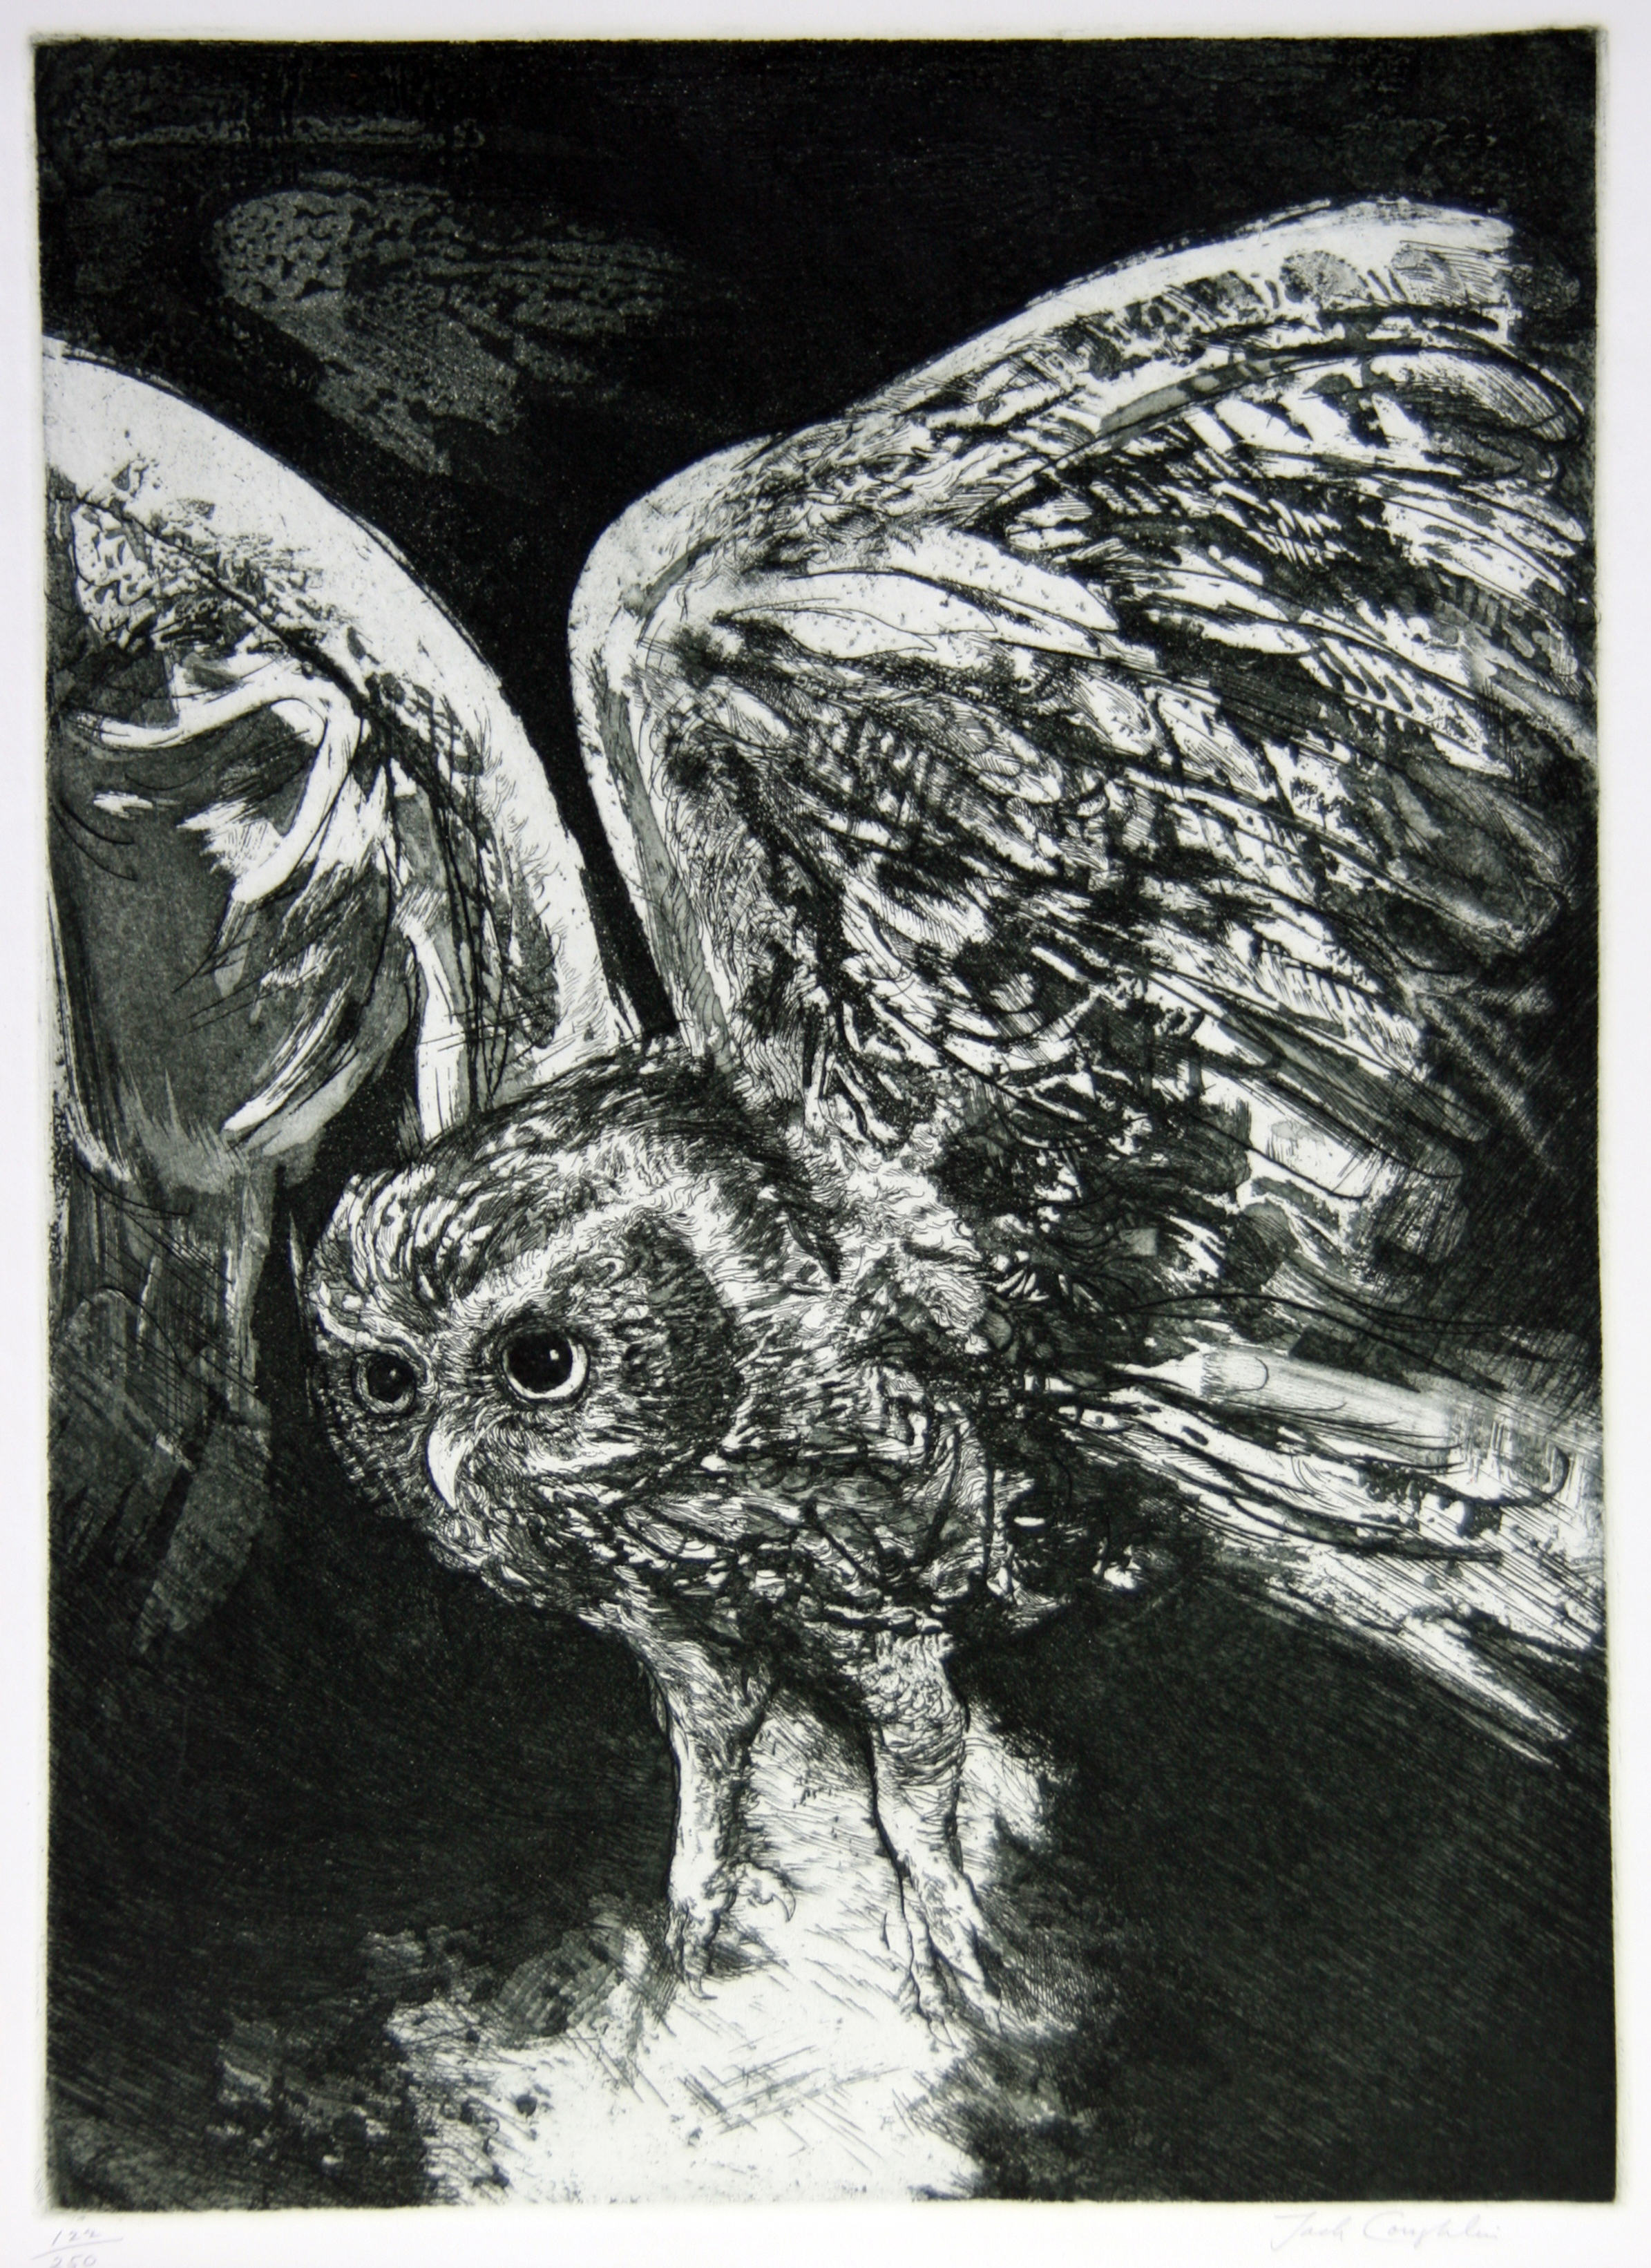 1981.015 |  Jack Coughlin | OWL IN FLIGHT | etching on paper | 15.5 x 11.25"